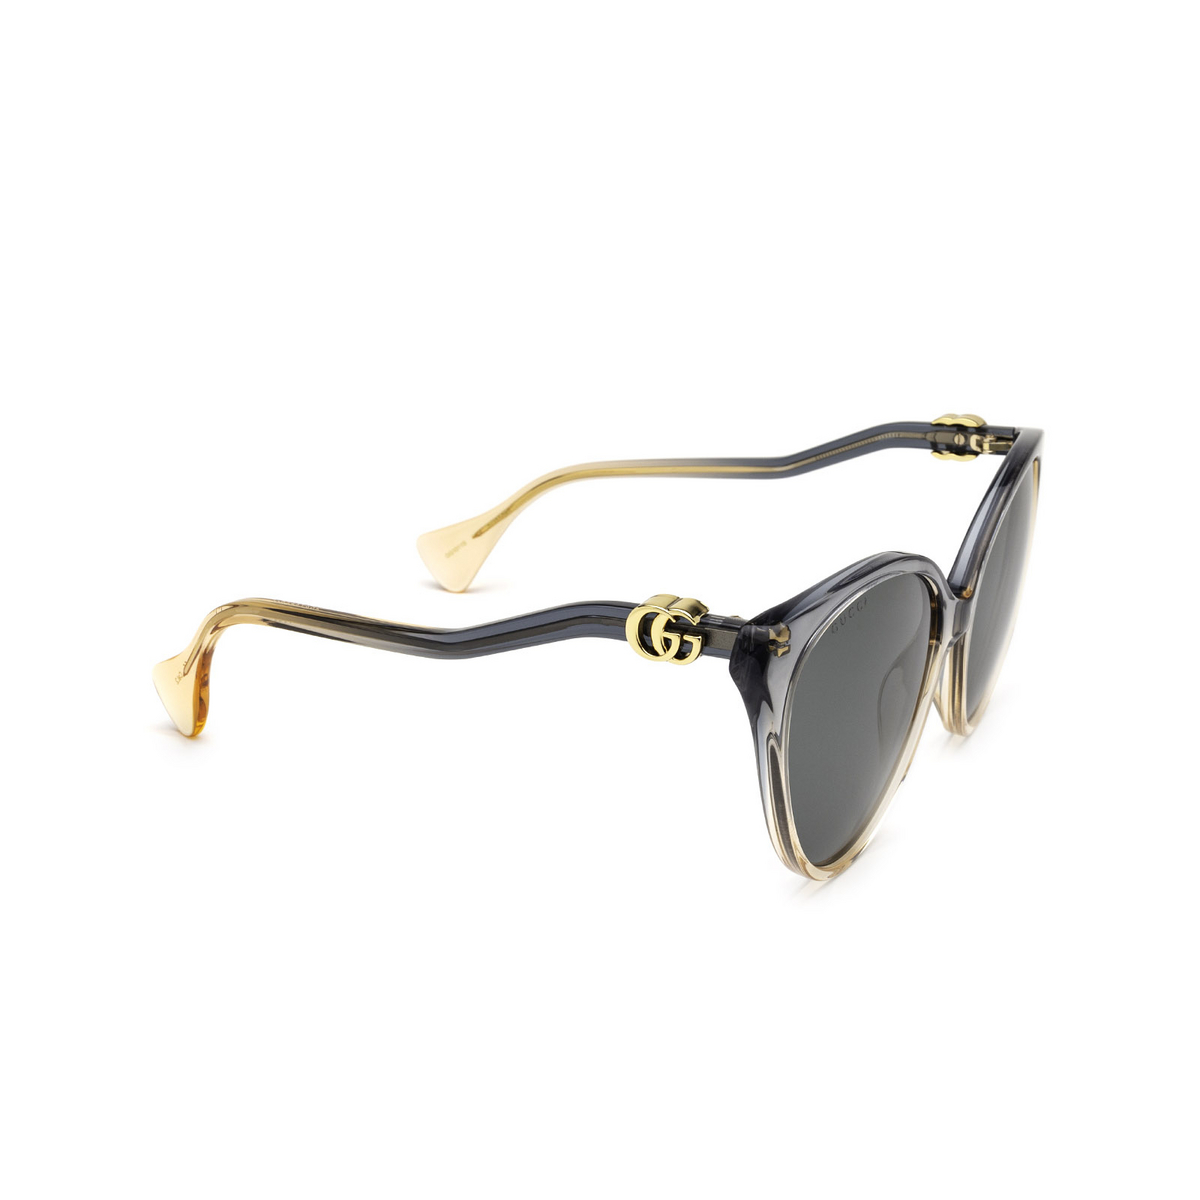 Gucci® Cat-eye Sunglasses: GG1011S color Blue & Pink 002 - three-quarters view.